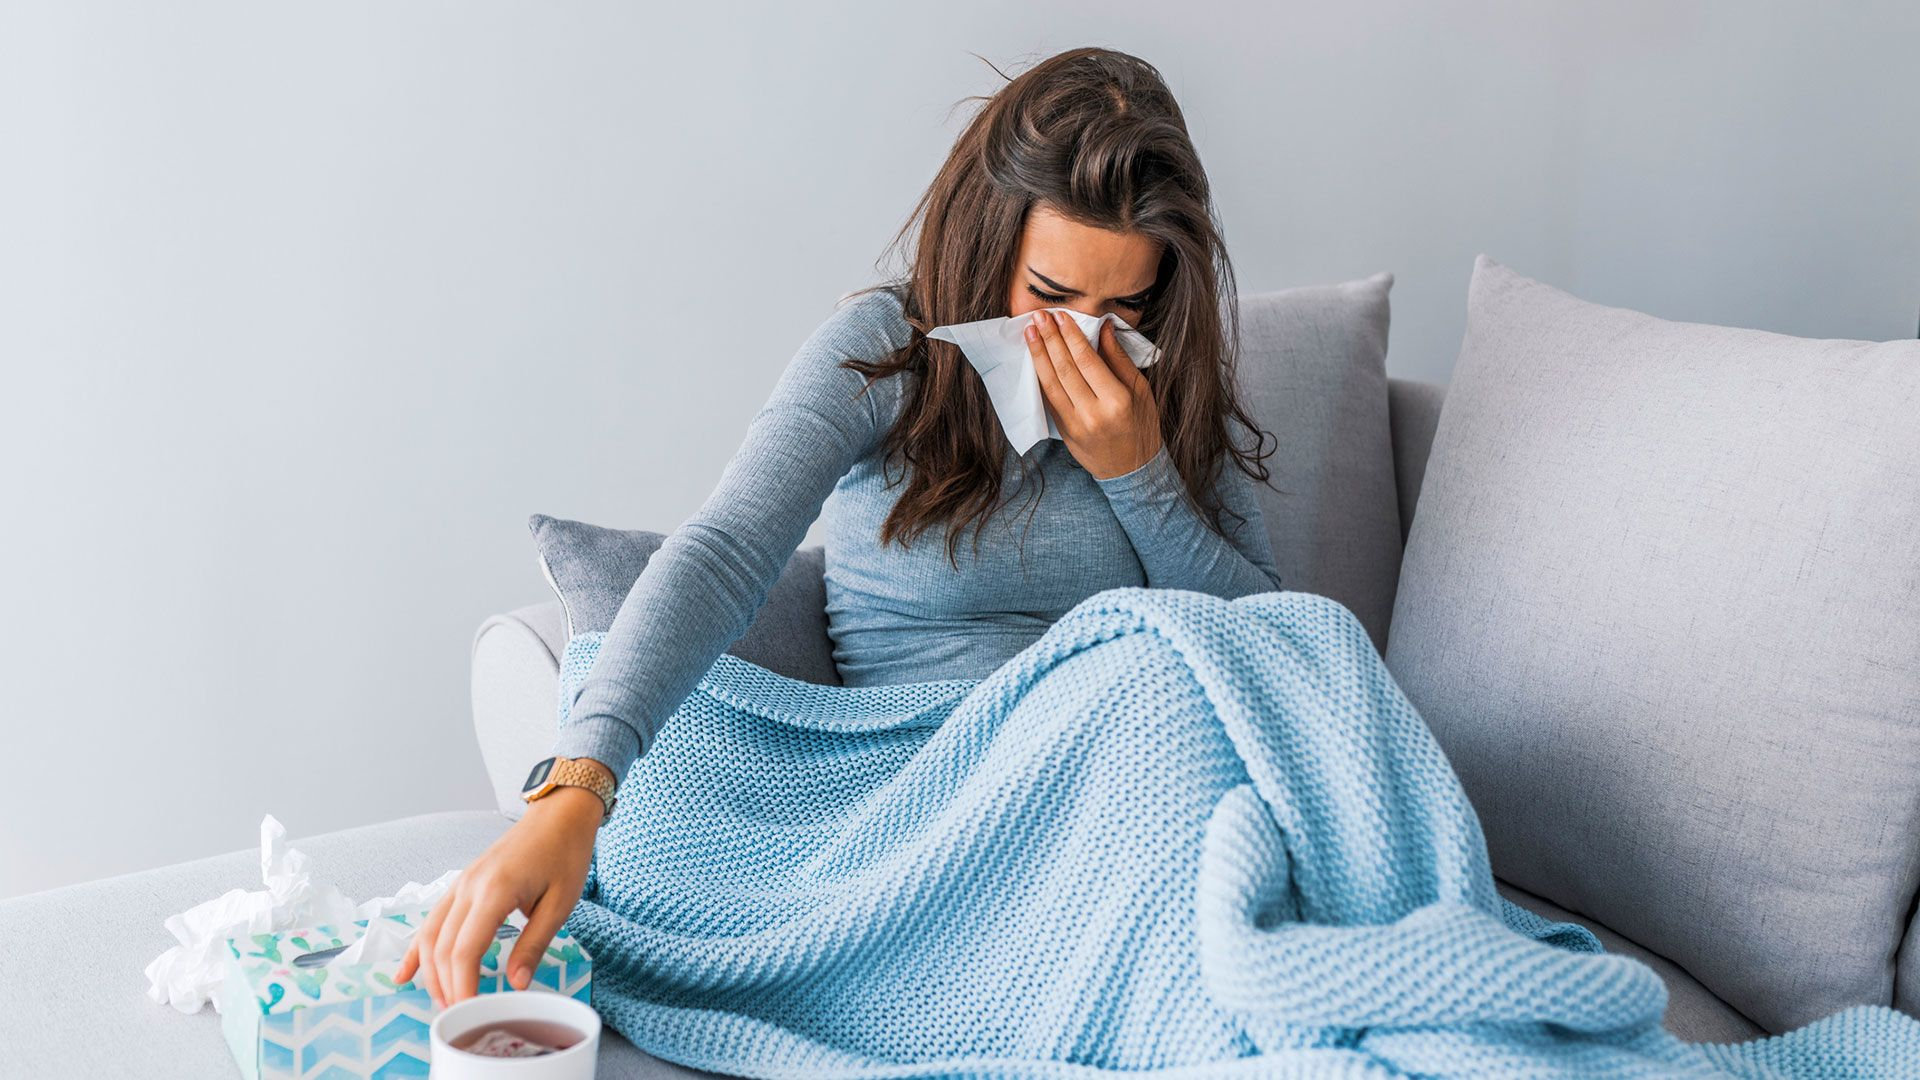 Have a Cold? Here's How to Get Some Relief